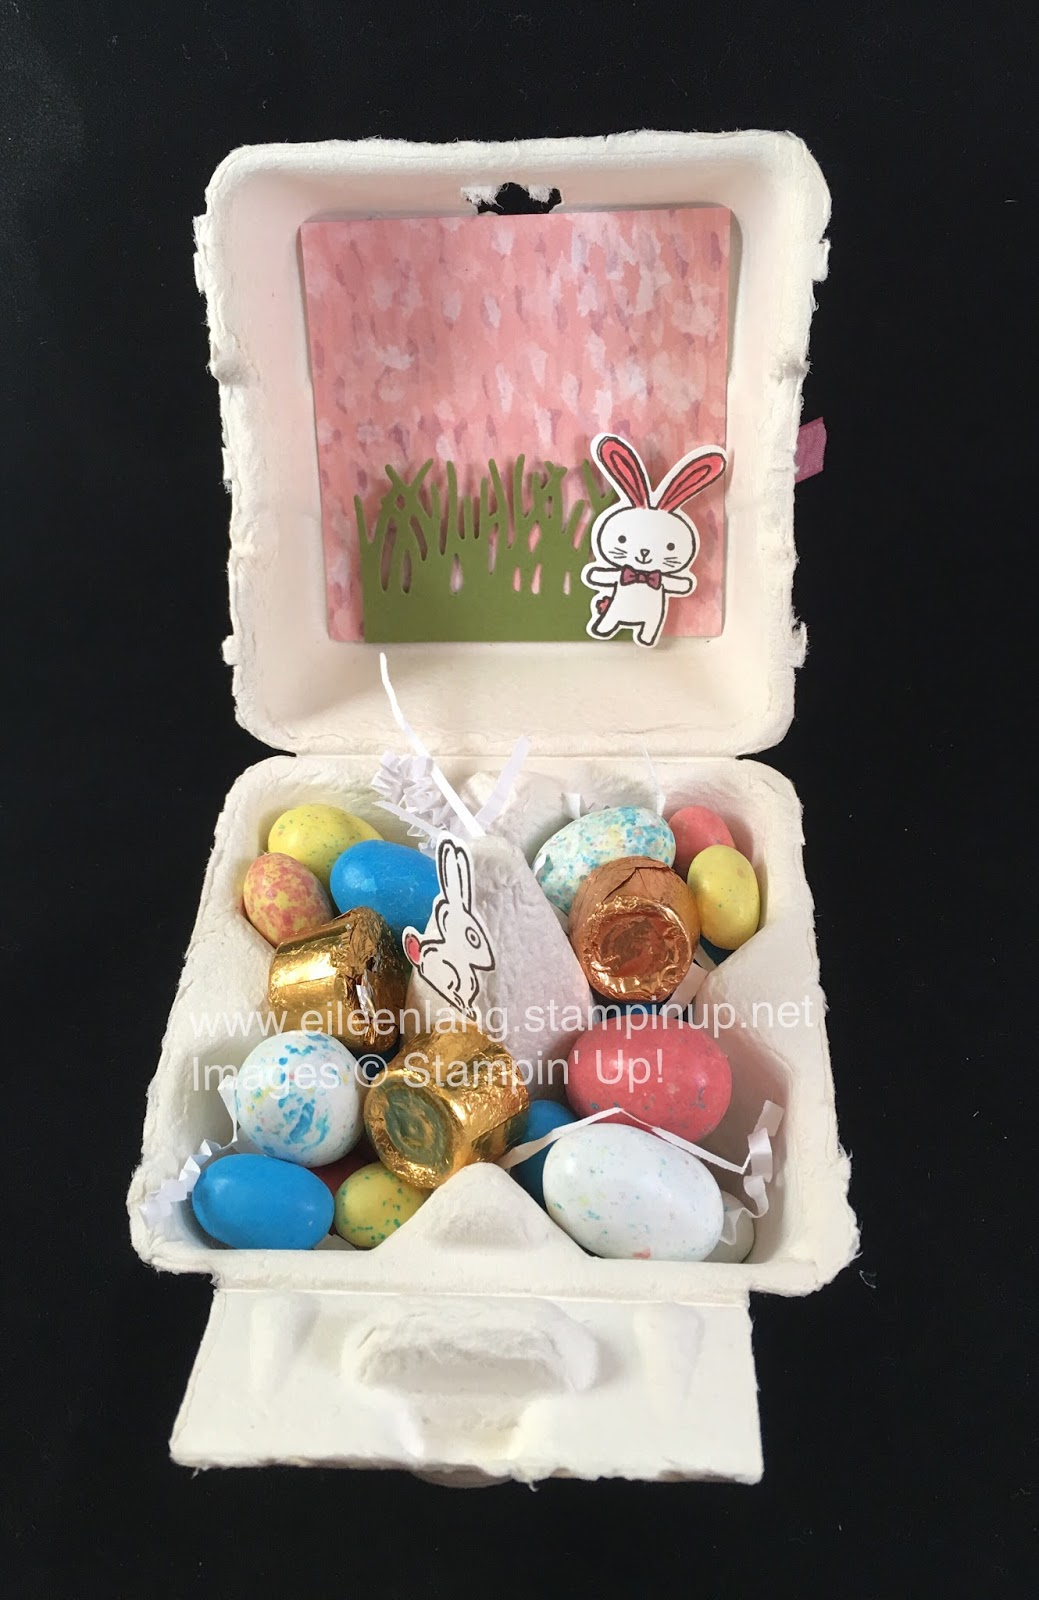 The new Mini Egg Cartons in the